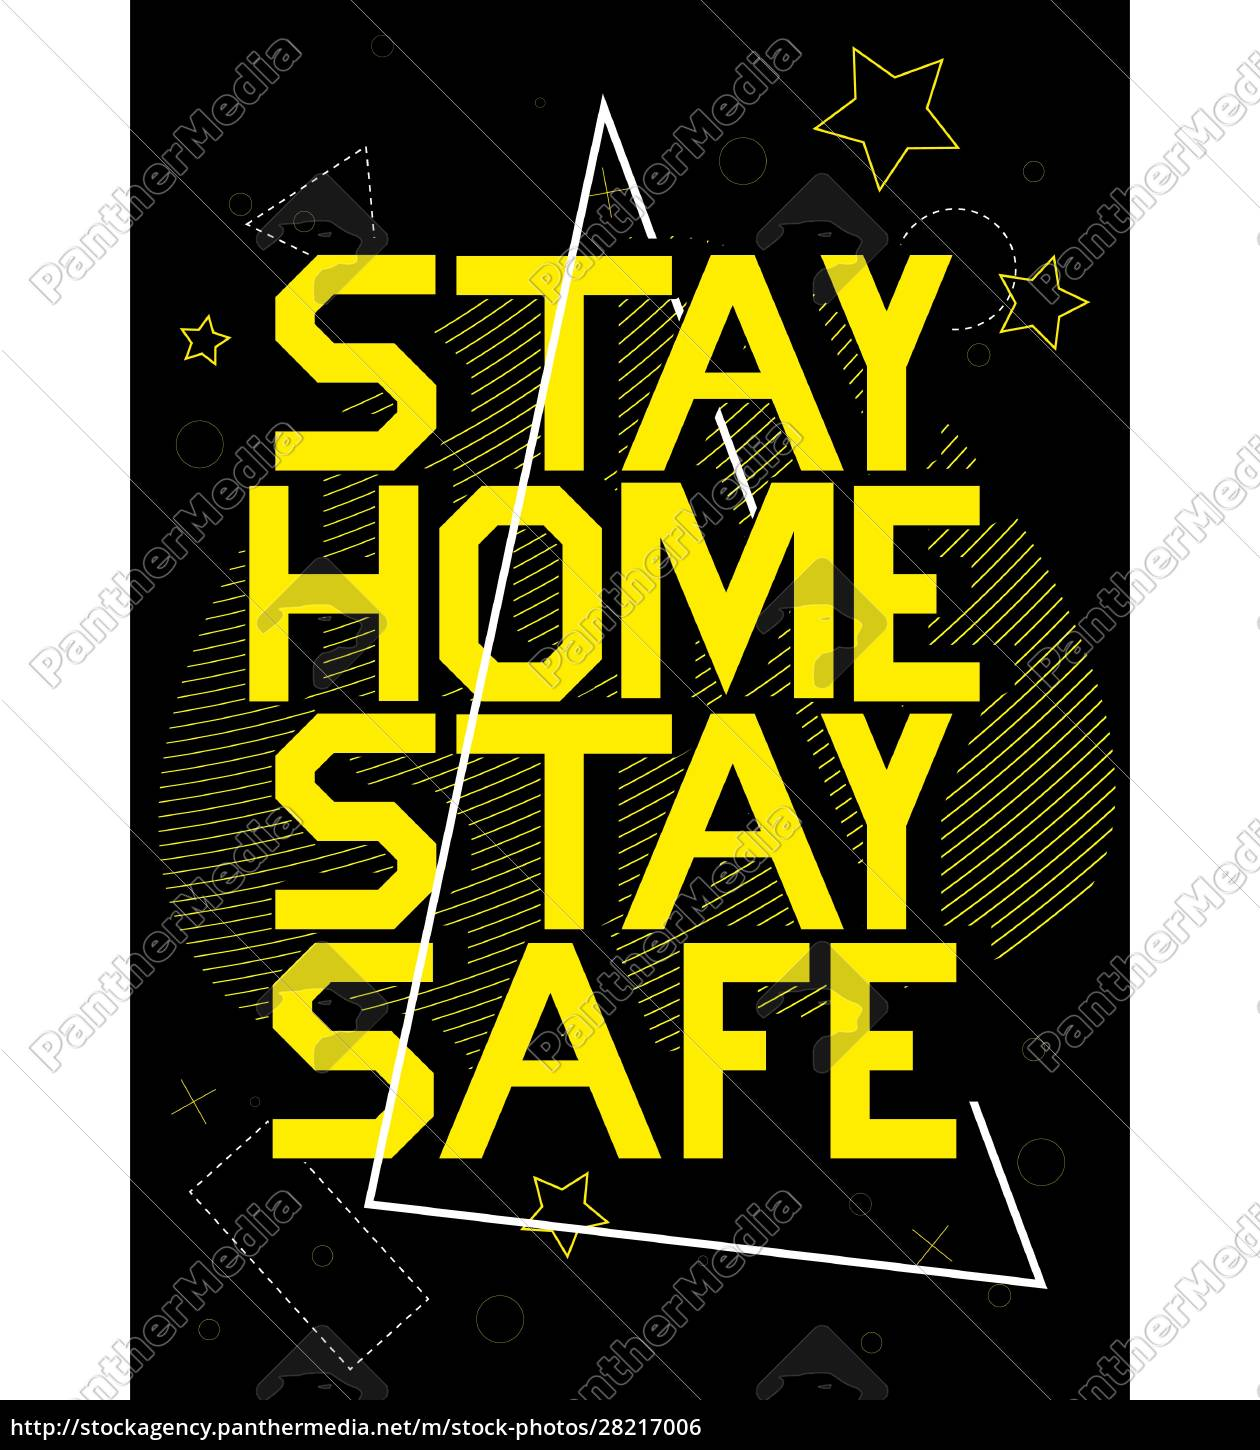 stay, home, stay, safe, banner, template - 28217006